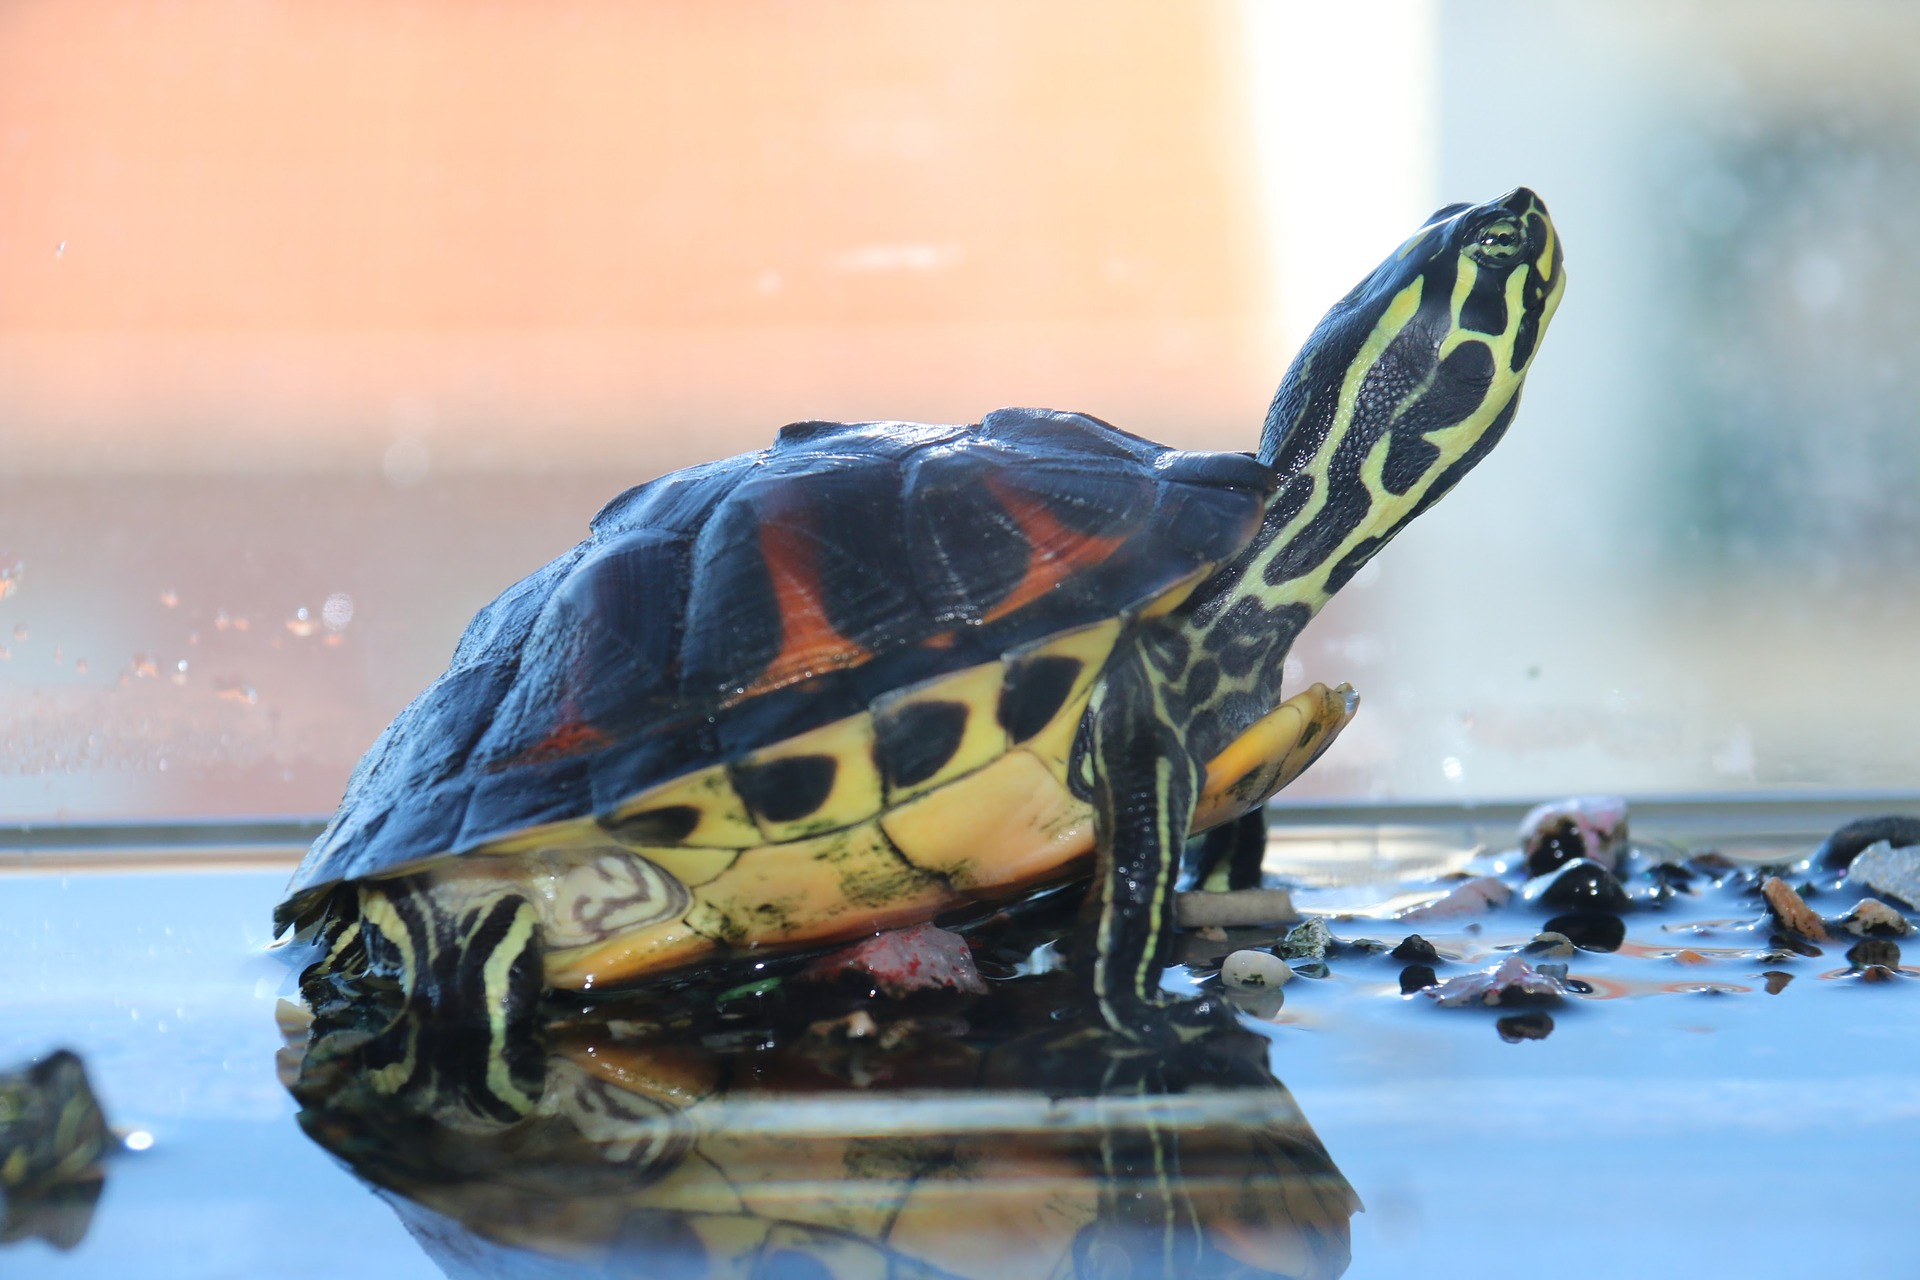 An Aquascape Guide For Turtle Tanks The Tye Dyed Iguana Reptiles And Reptile Supplies In St Louis